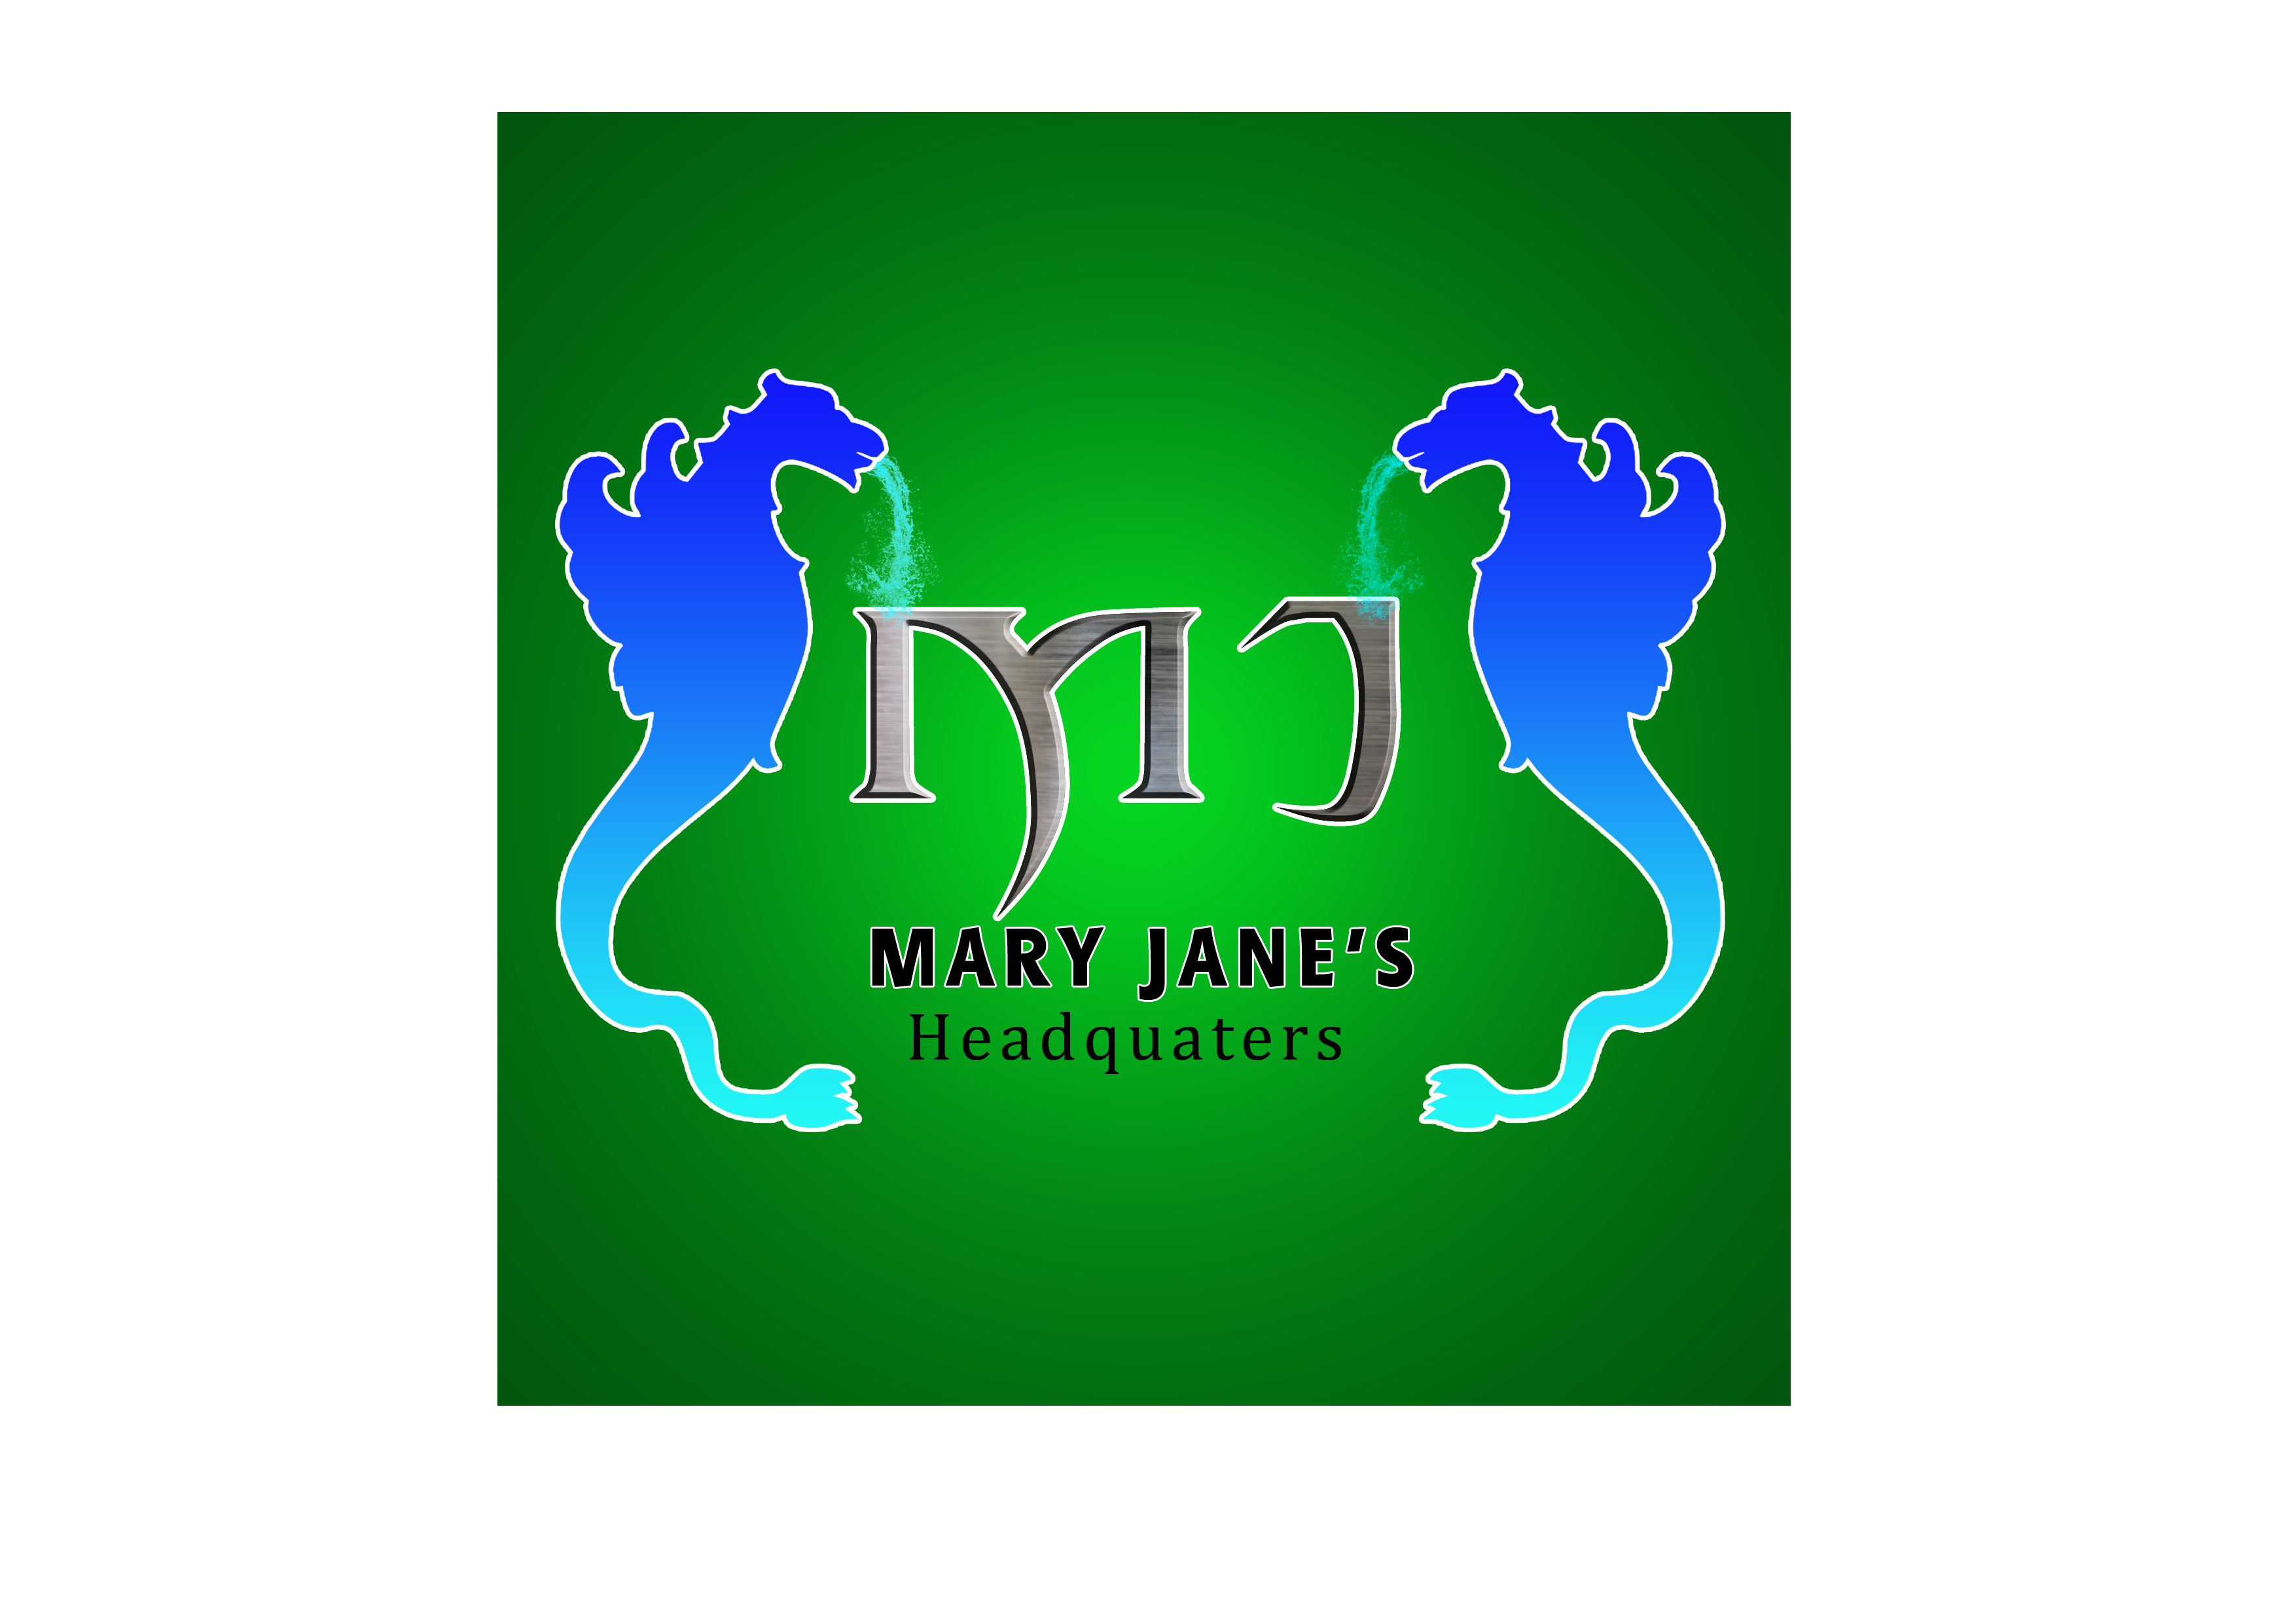 Logo Design by intentio_graphikos - Entry No. 75 in the Logo Design Contest Mary Jane's Headquarters Logo Design.